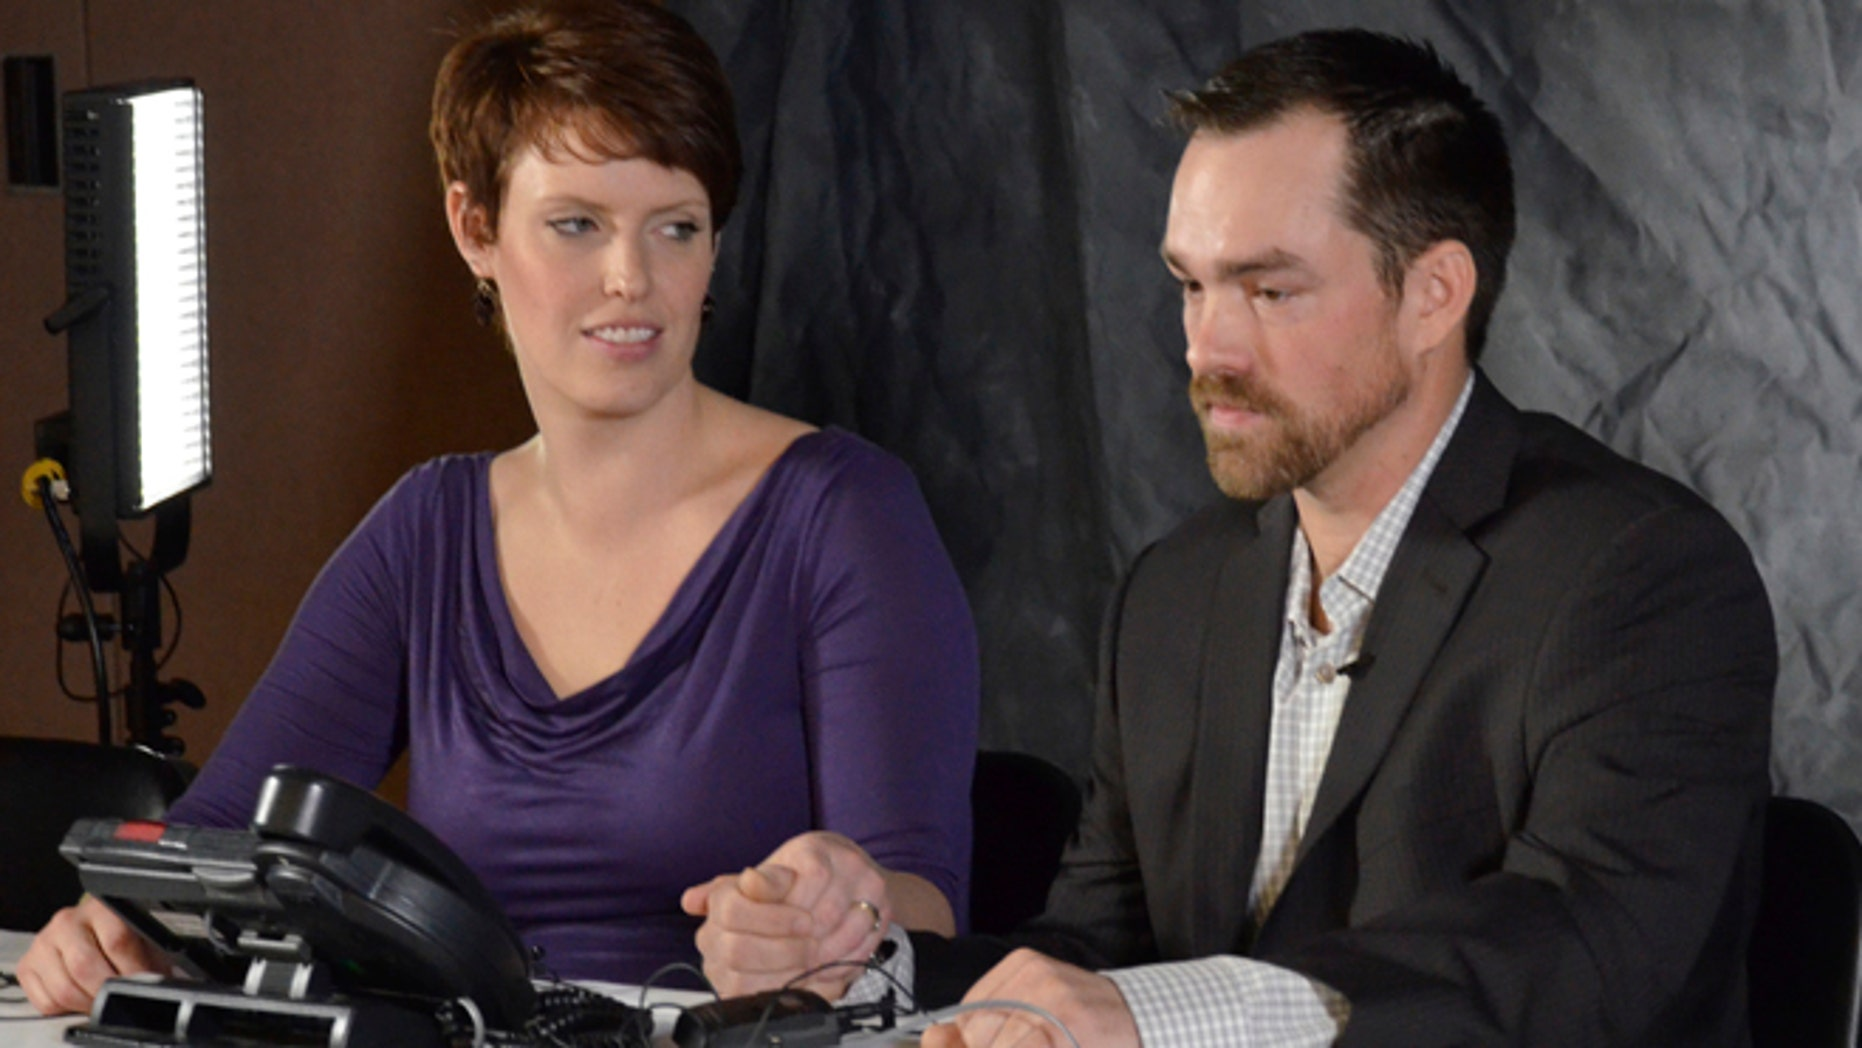 Jan. 16, 2013: In this file photo Clint Romesha, a North Dakota veteran set to receive the Medal of Honor for courageous action during a 13-hour firefight in Afghanistan, right, speaks at a news conference alongside his wife, Tammy, Wednesday in Minot, N.D.